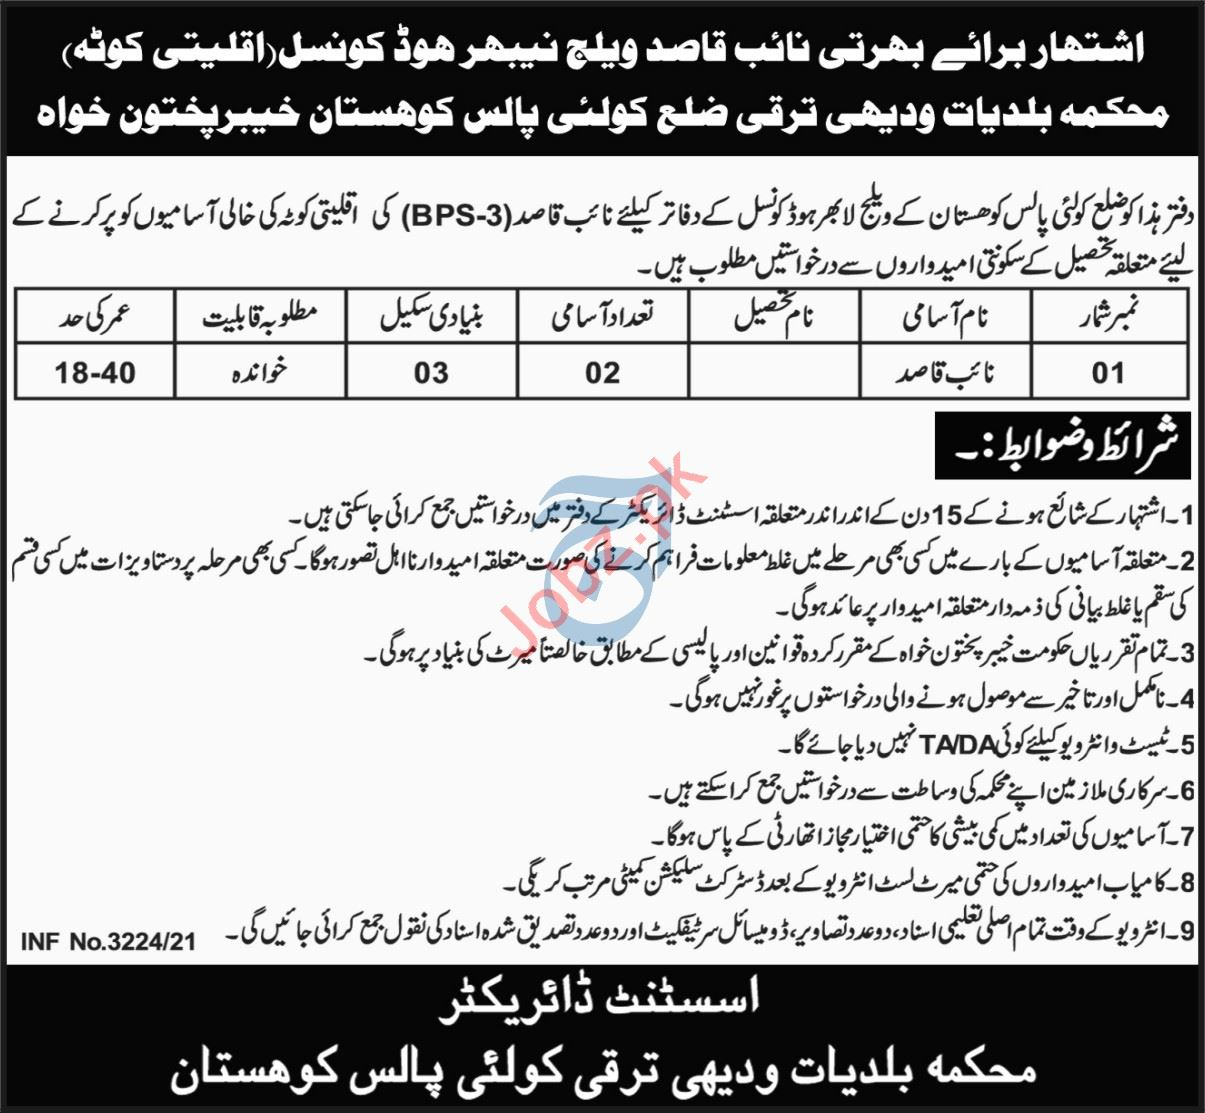 Village Council LG And RD Department Kohistan KP Jobs